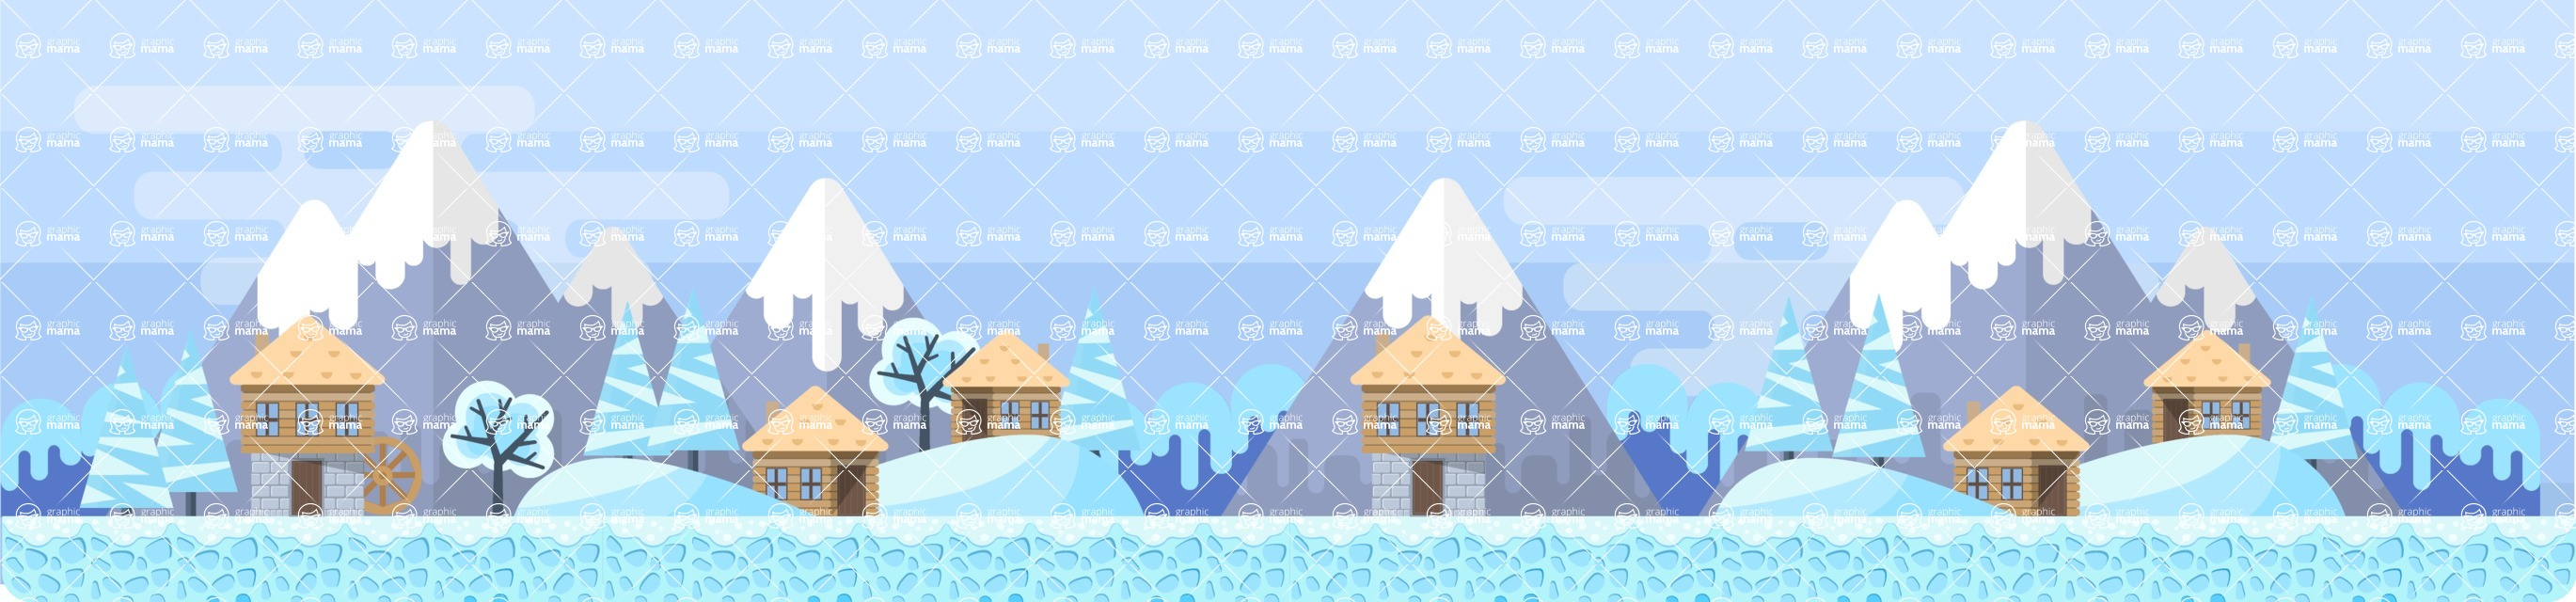 Background Vector Creation pack. A rich collection of flat vector elements for nature landscapes, city skylines, futuristic towns, fantastic scenes.  - Backgrounds 46